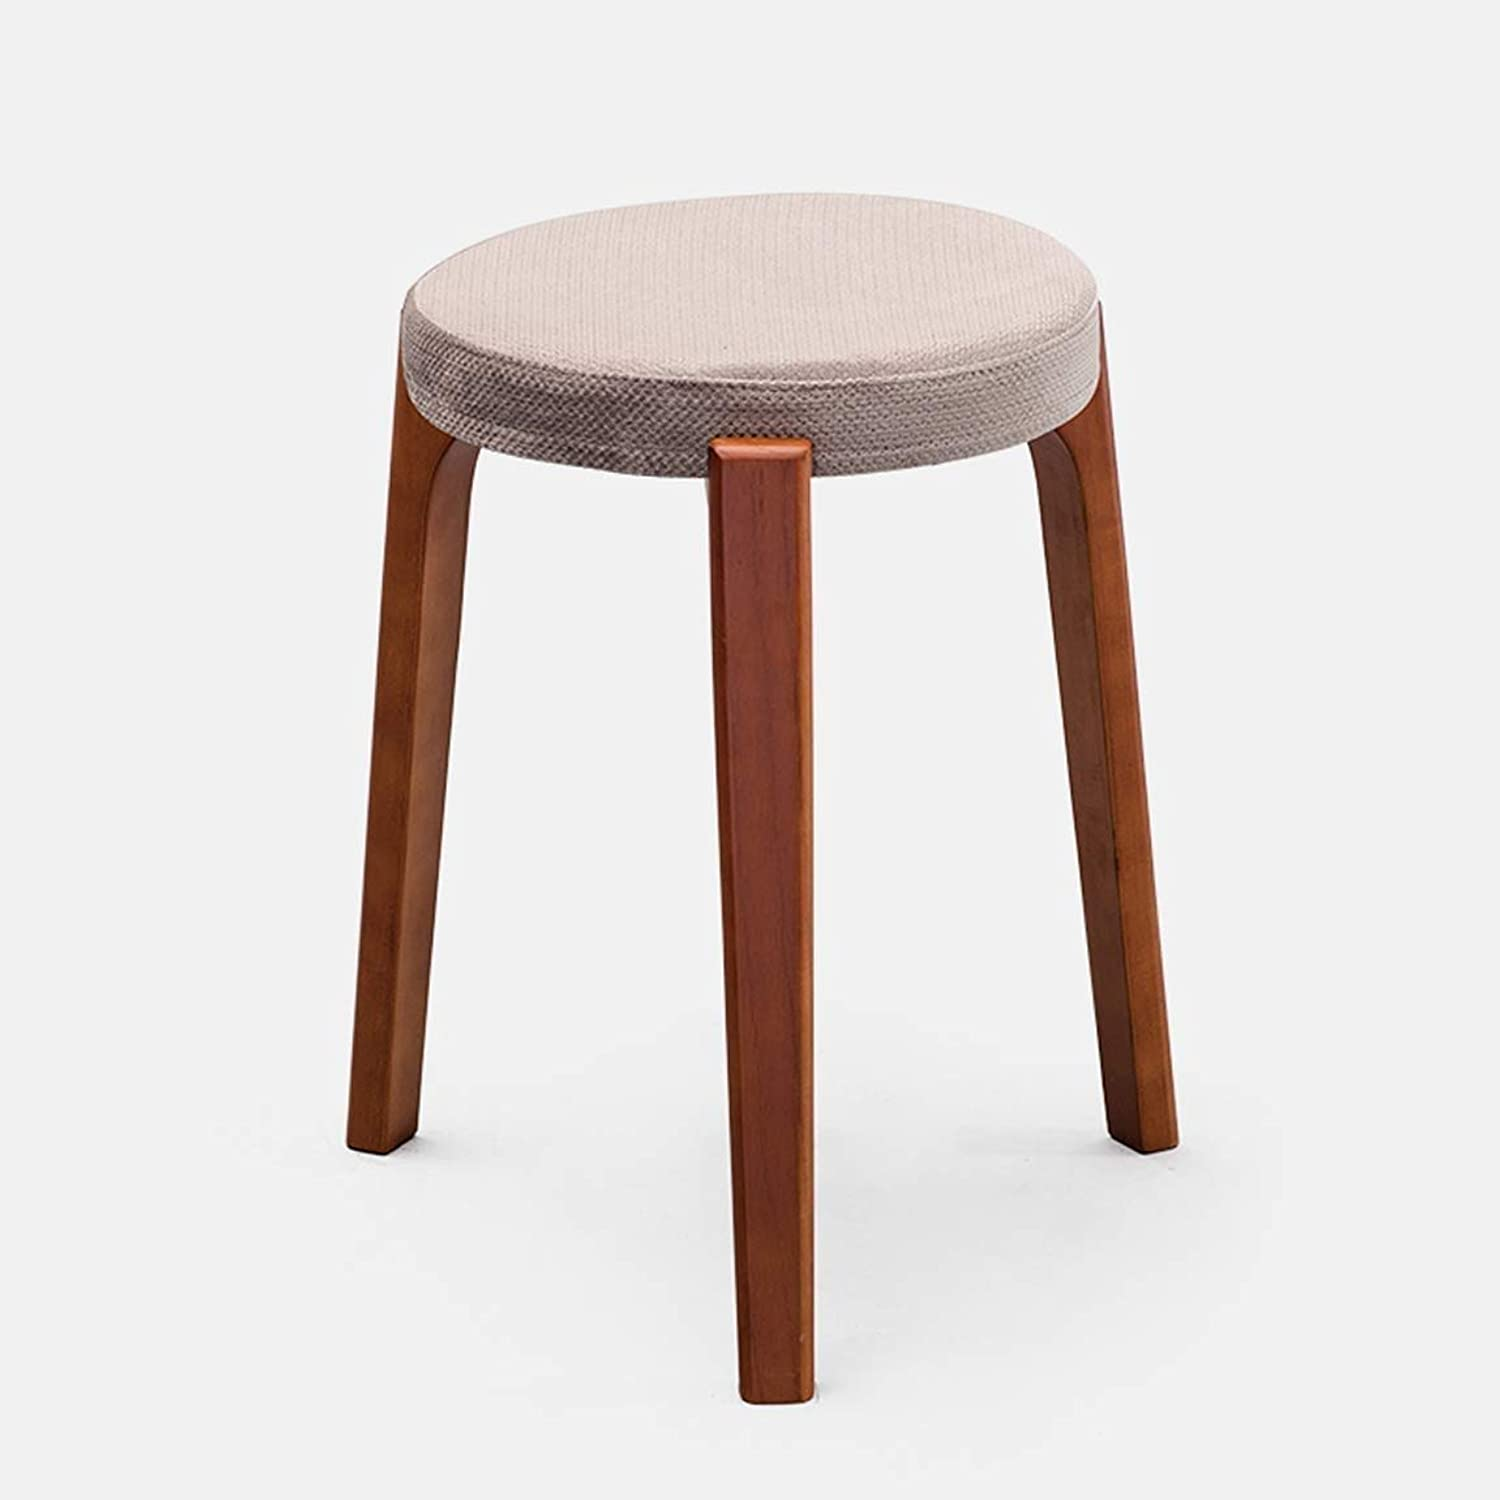 Creative Small Stool, Solid Wooden Dining Stool, Square Stool, Dressing Stool, Simple Fashionable Dressing Stool, Bench, Household Stool, Brown Leg 9 GMING (Size   31  45cm)